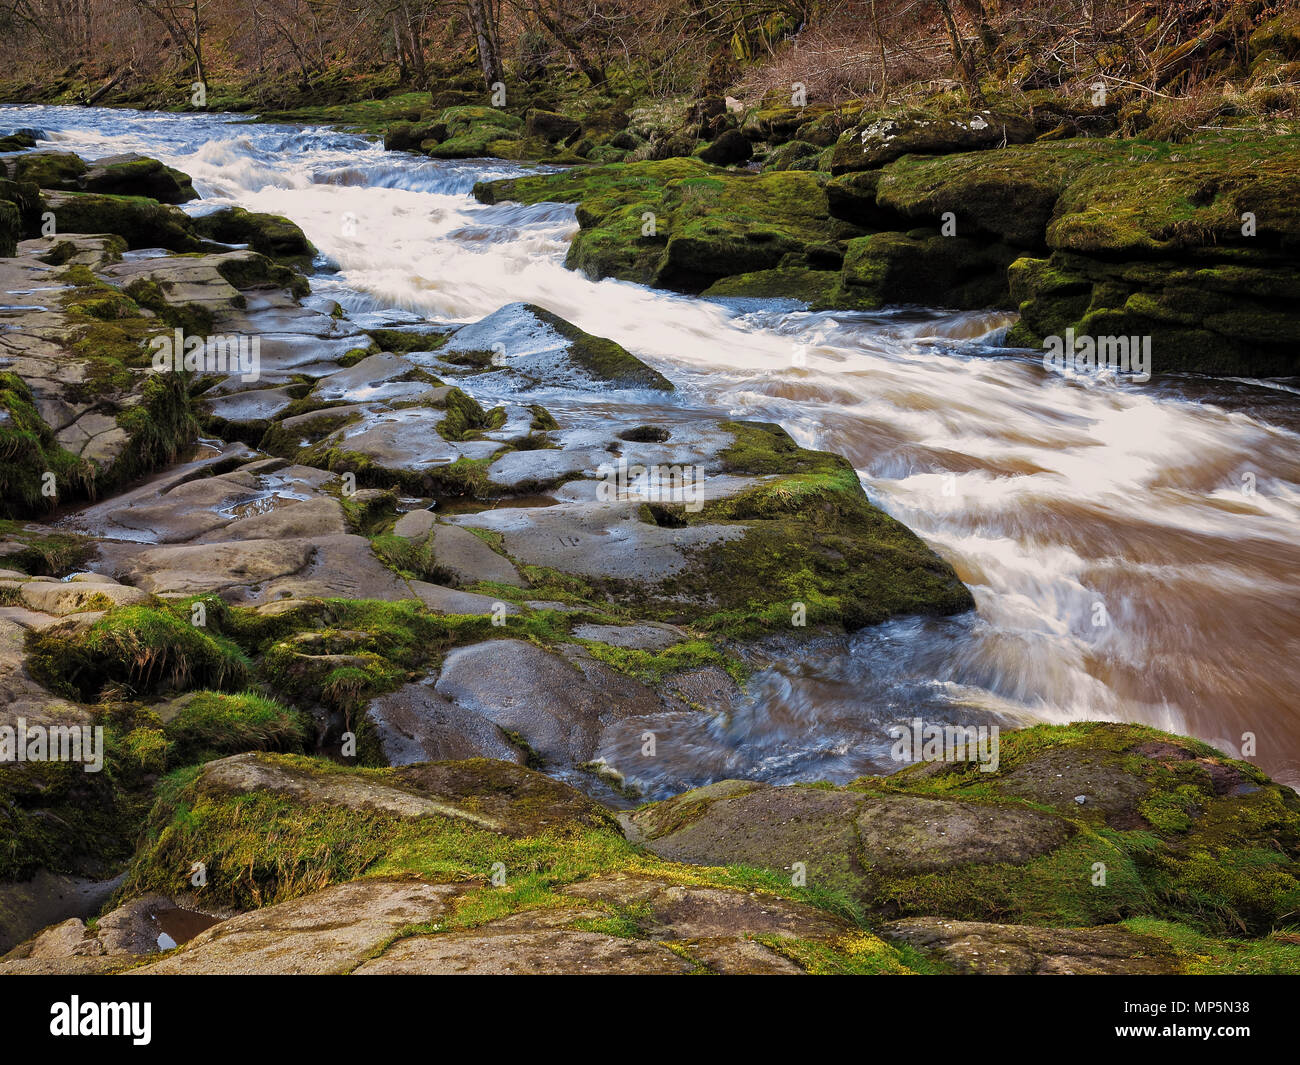 Lines of the River Wharfe at The Strid, near Bolton Abbey, Yorkshire Dales - Stock Image